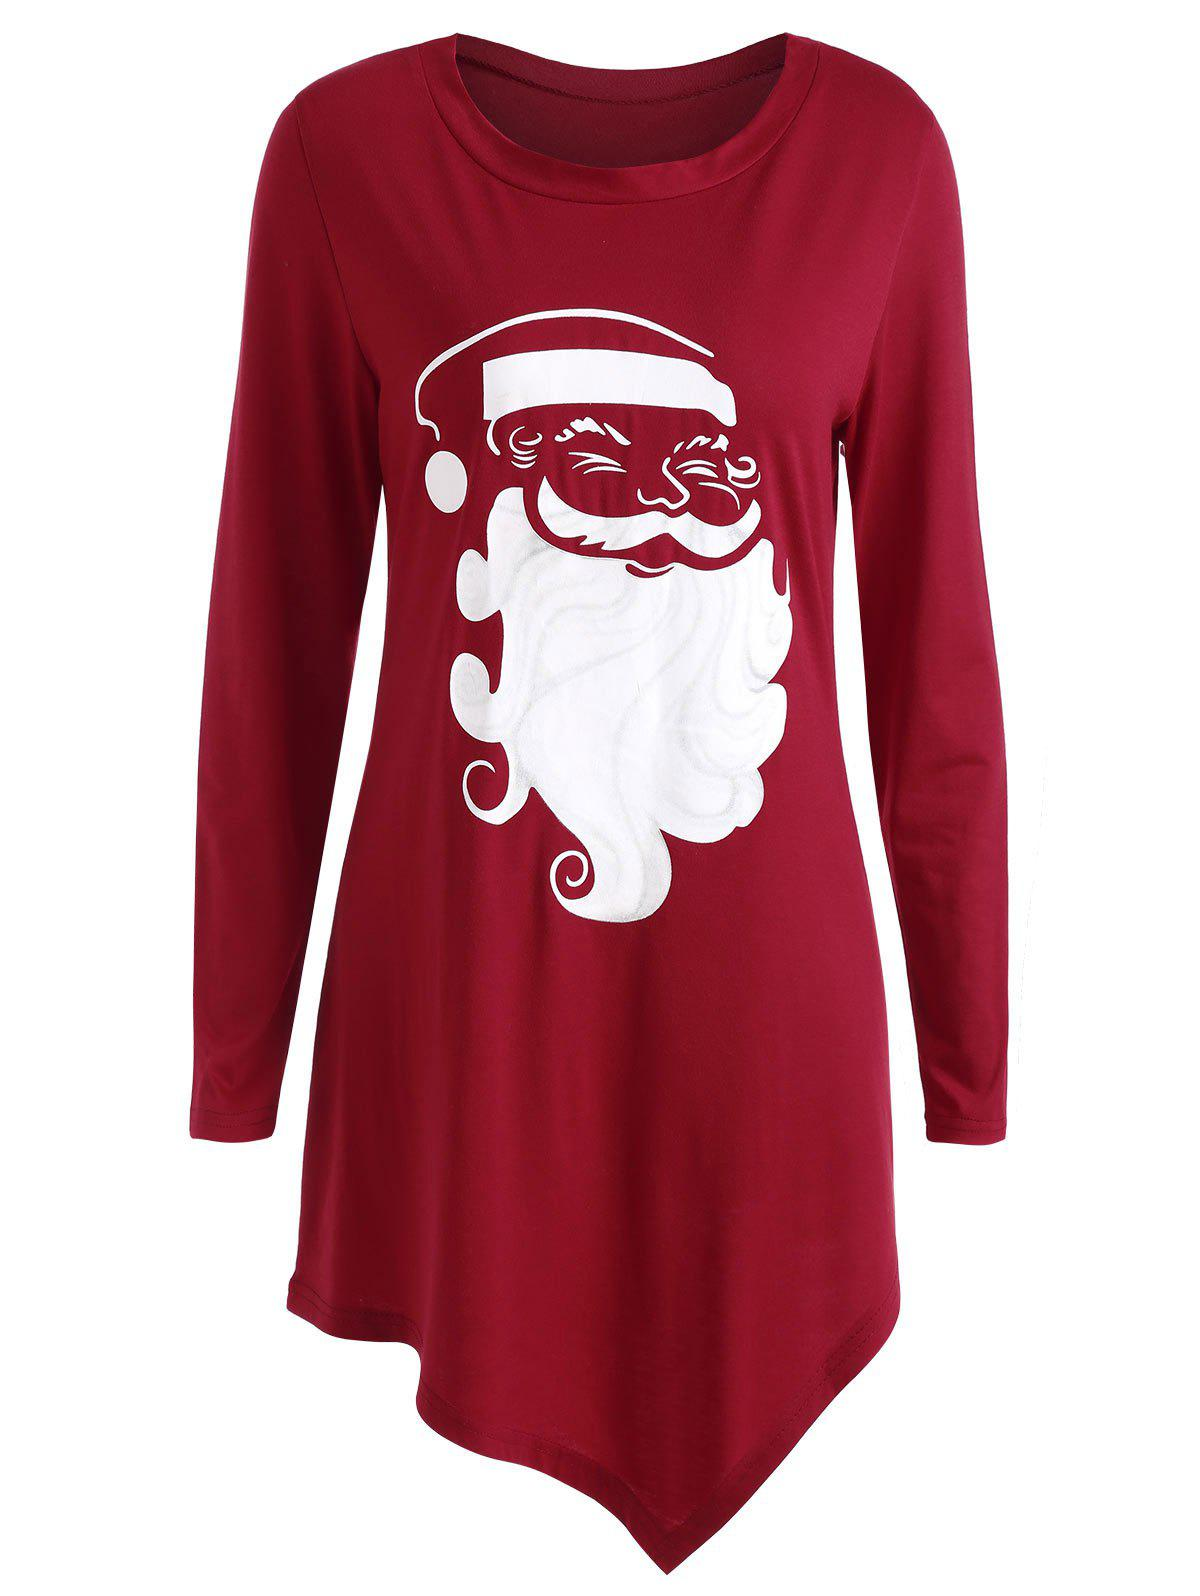 1dc19a175 42% OFF] Plus Size Christmas Santa Claus T-shirt | Rosegal